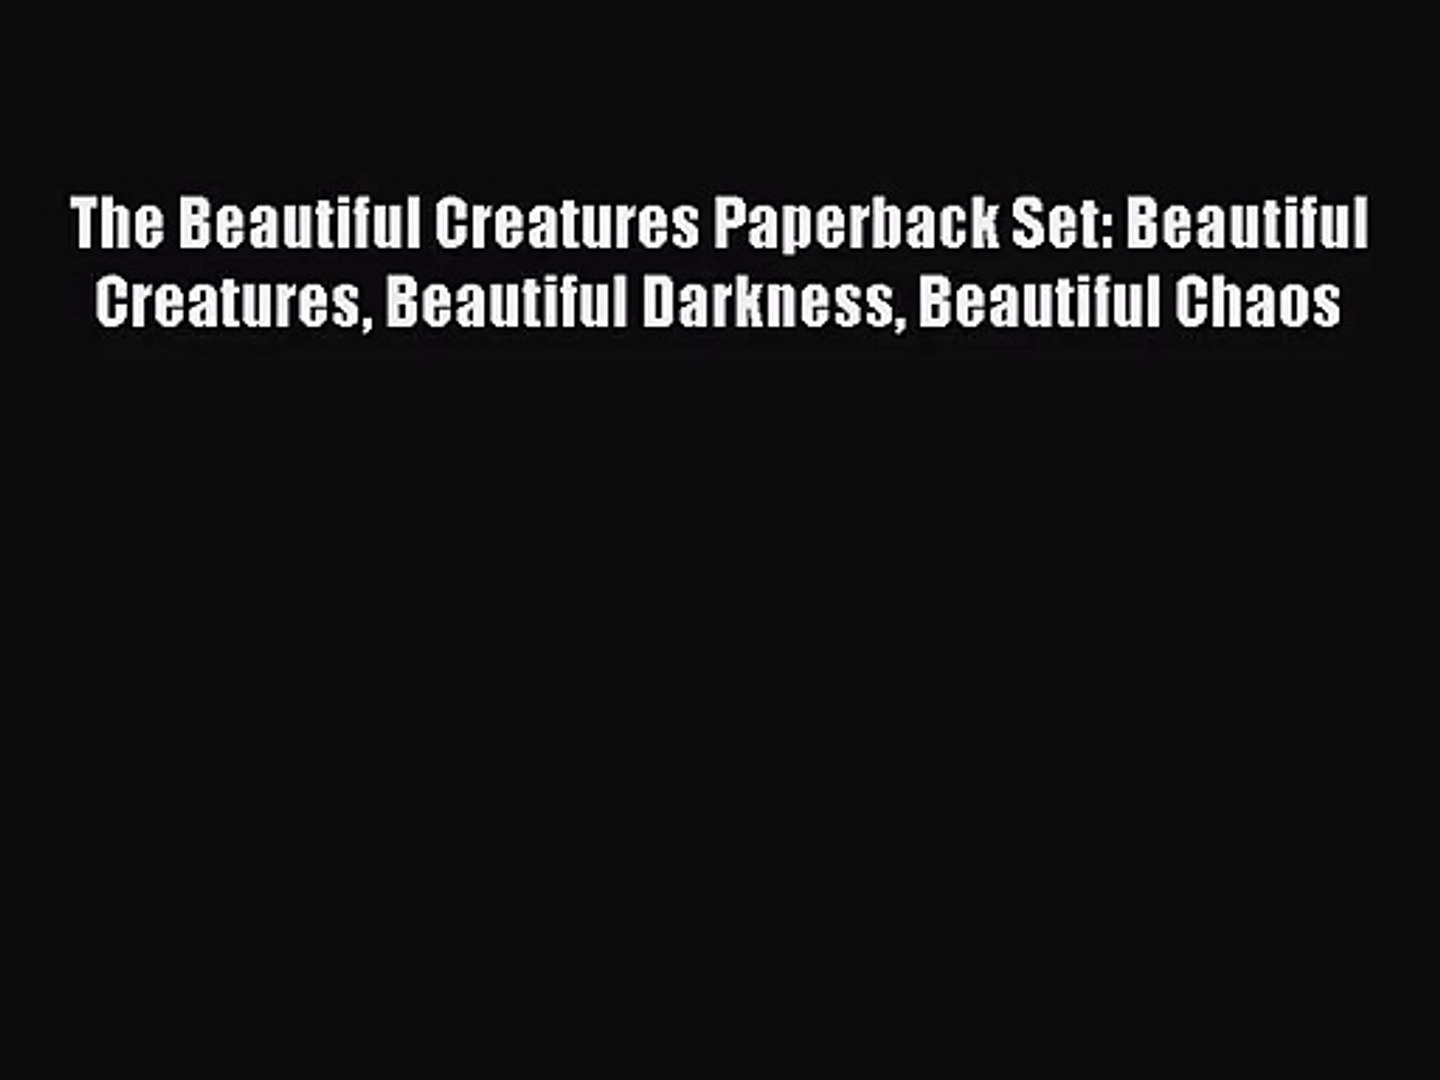 [PDF Download] The Beautiful Creatures Paperback Set: Beautiful Creatures Beautiful Darkness